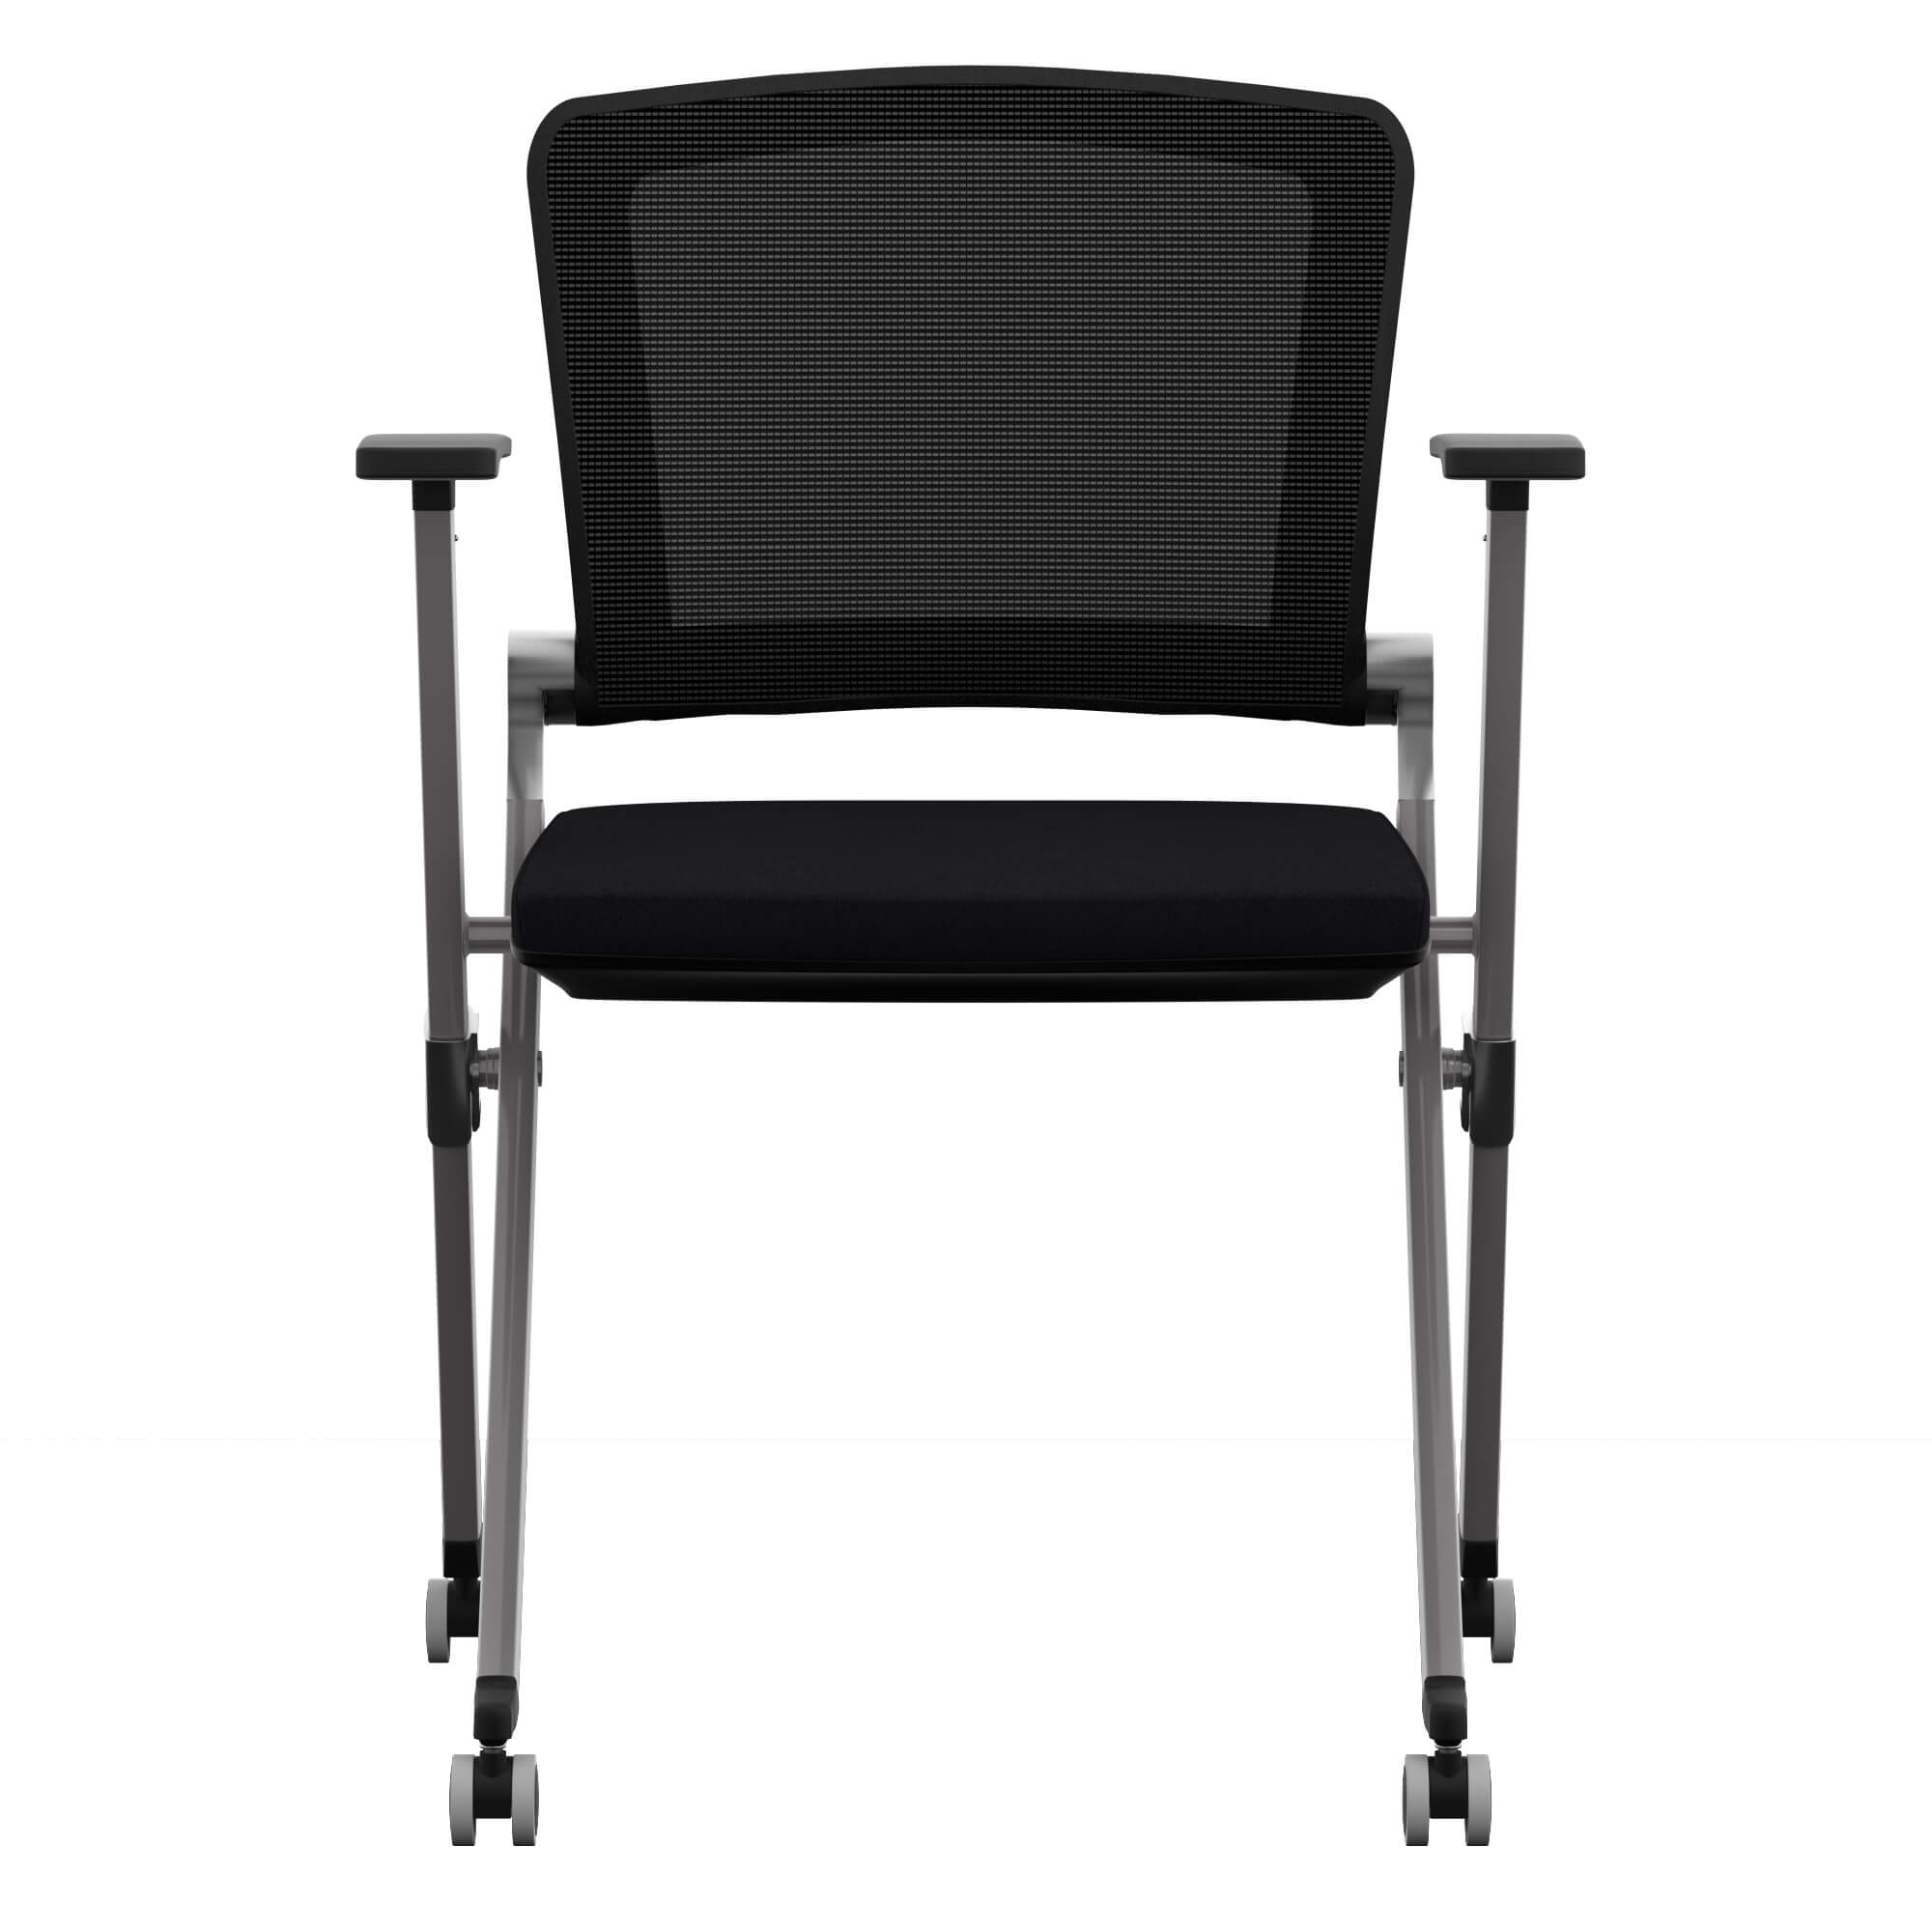 Folding office chair front view 1